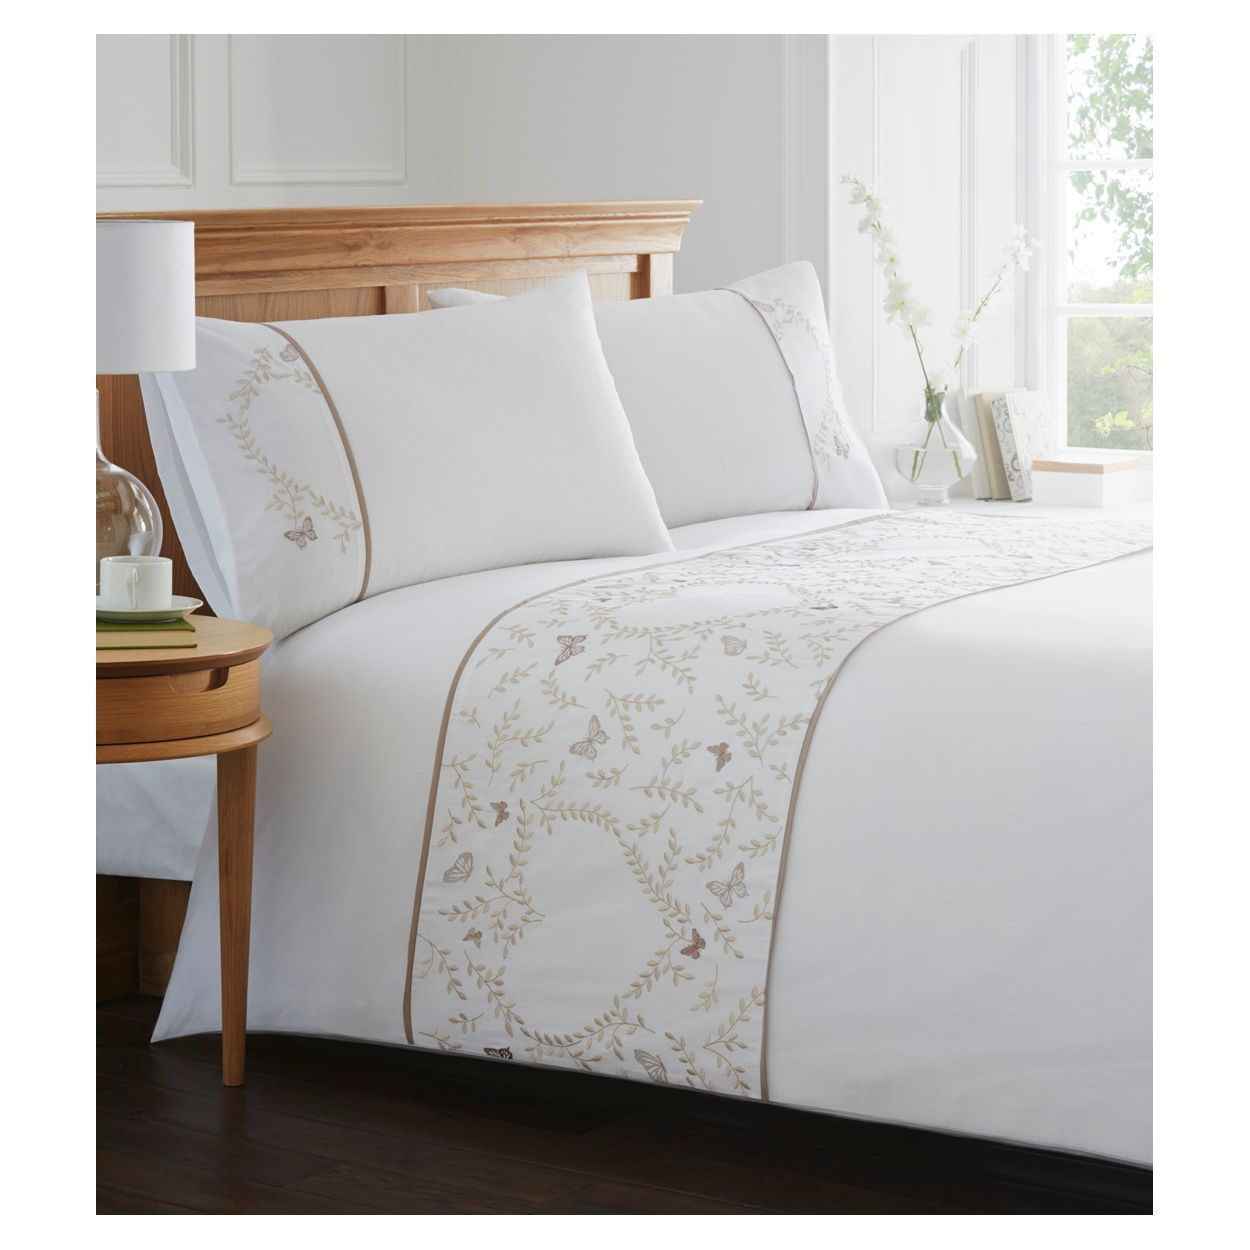 Home Collection White butterfly and heart print bedding set    Debenhams. Home Collection White butterfly and heart print bedding set